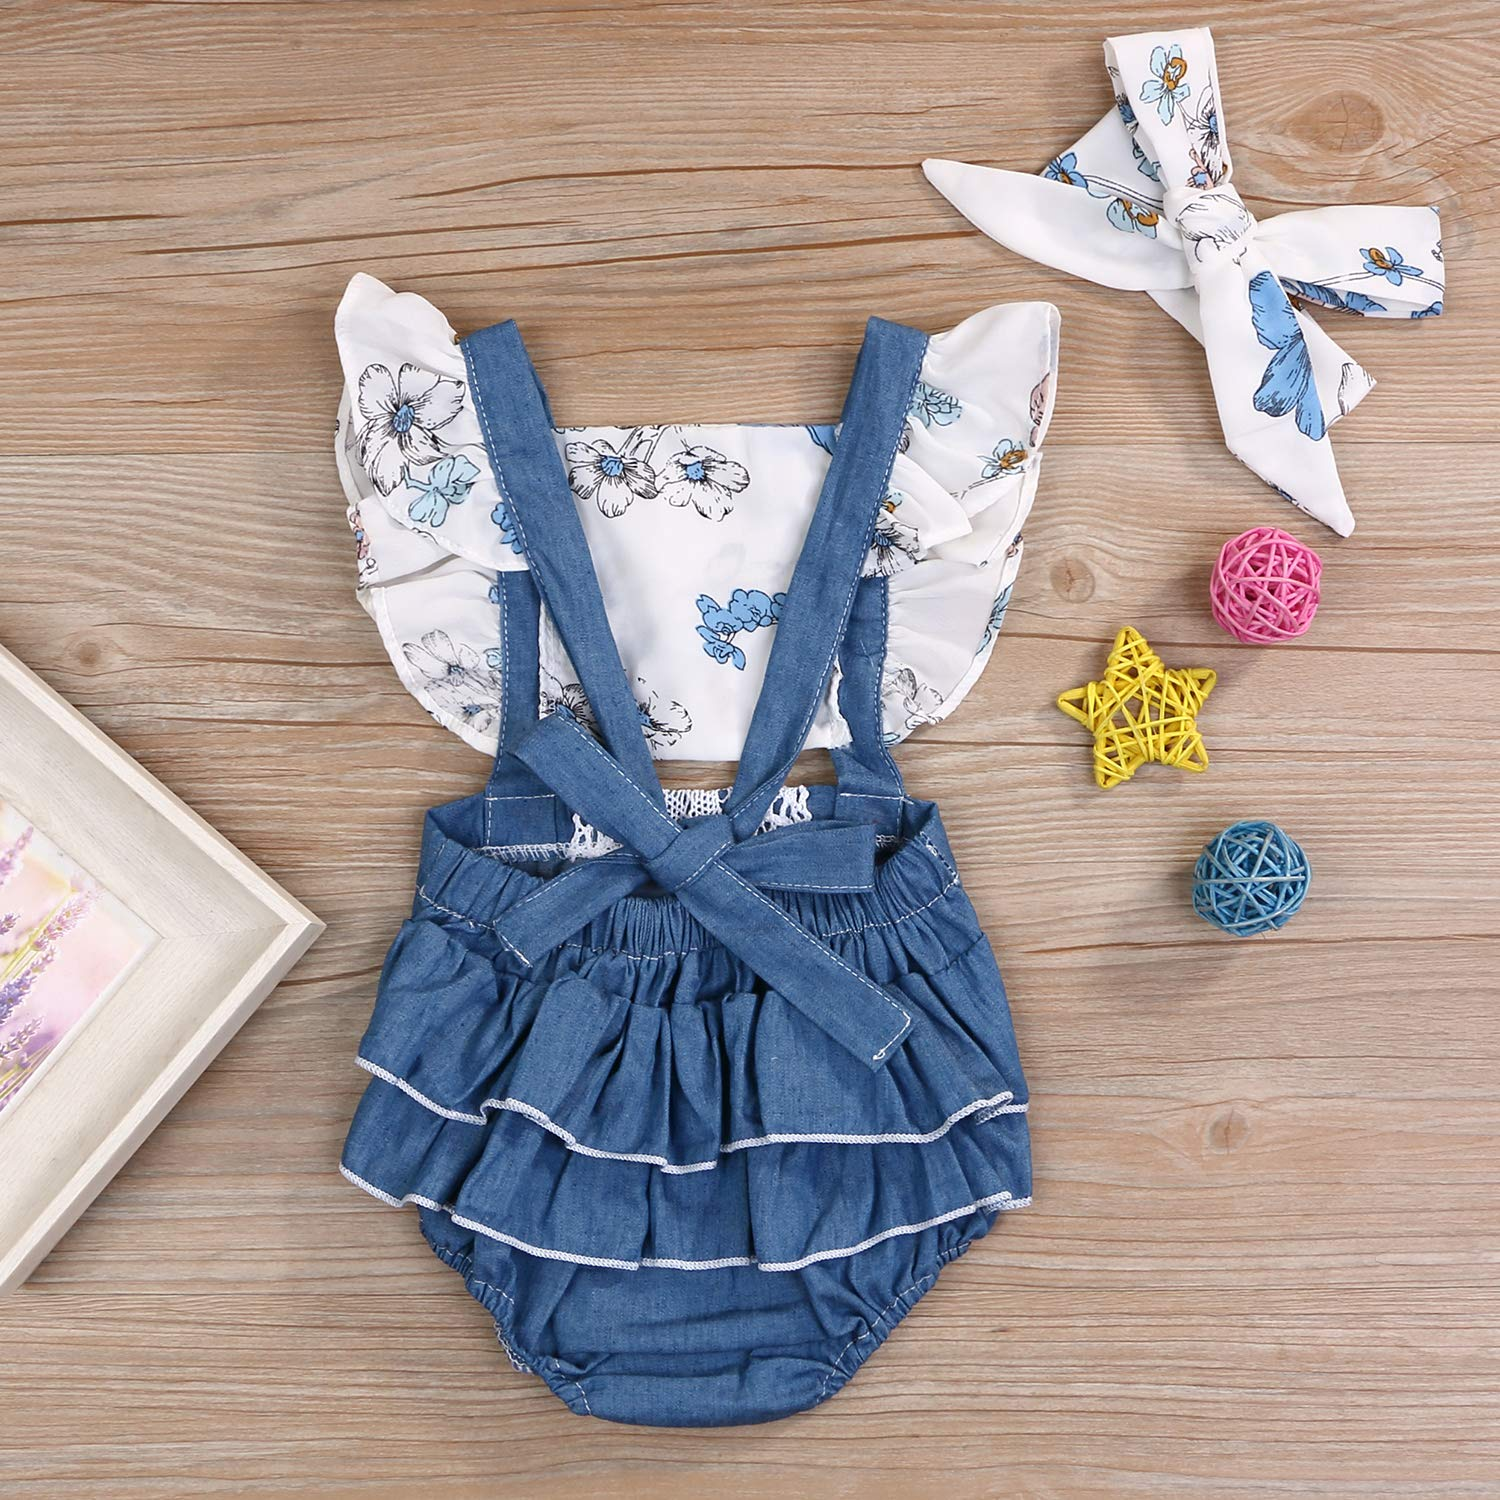 Newborn Baby Girls Floral Backless Lacing Ruffle Sleeve Summer Sunflower Romper OneSize Clothing